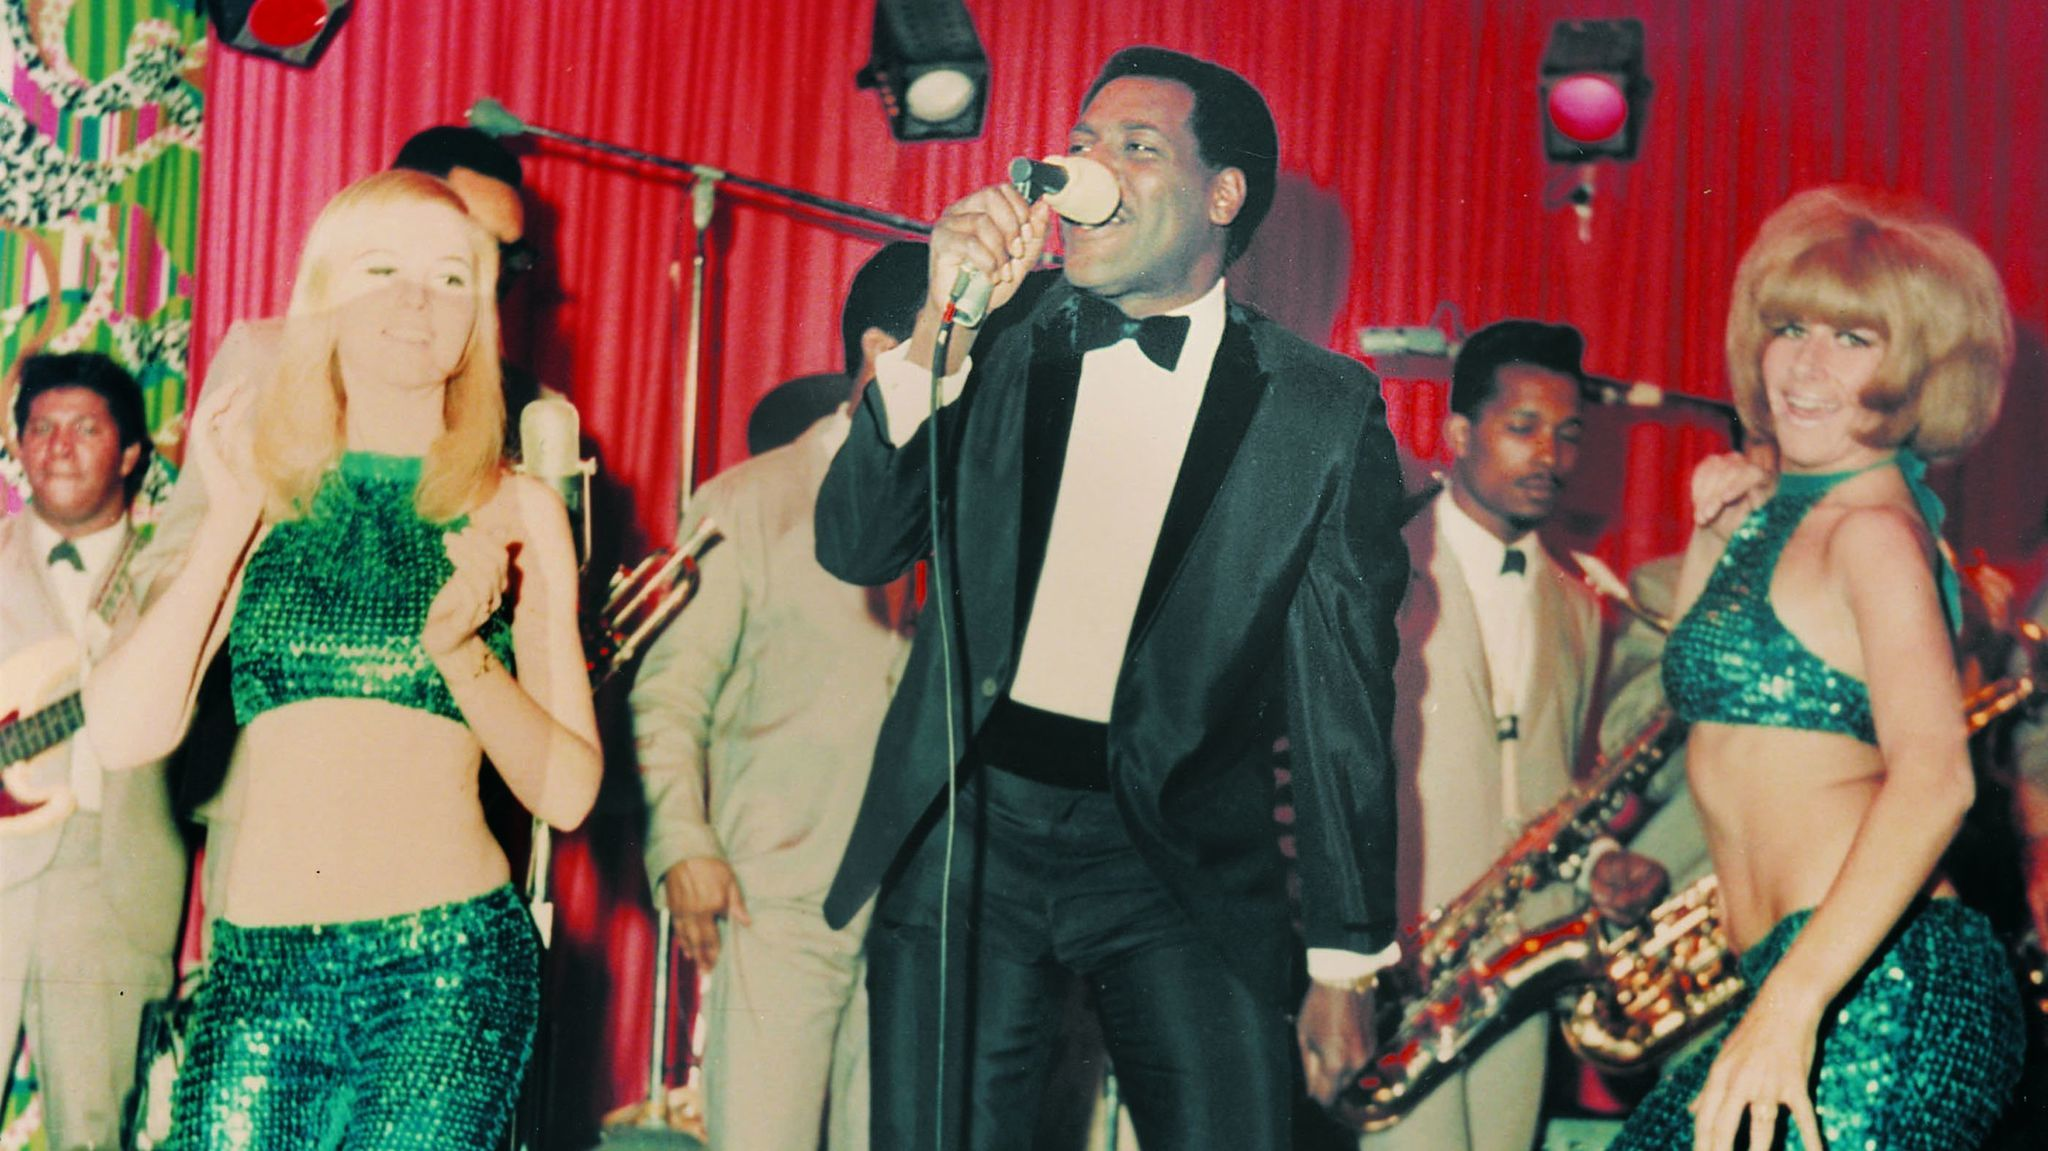 Otis Redding on stage at the Whisky A Go Go in Hollywood in April 1966.